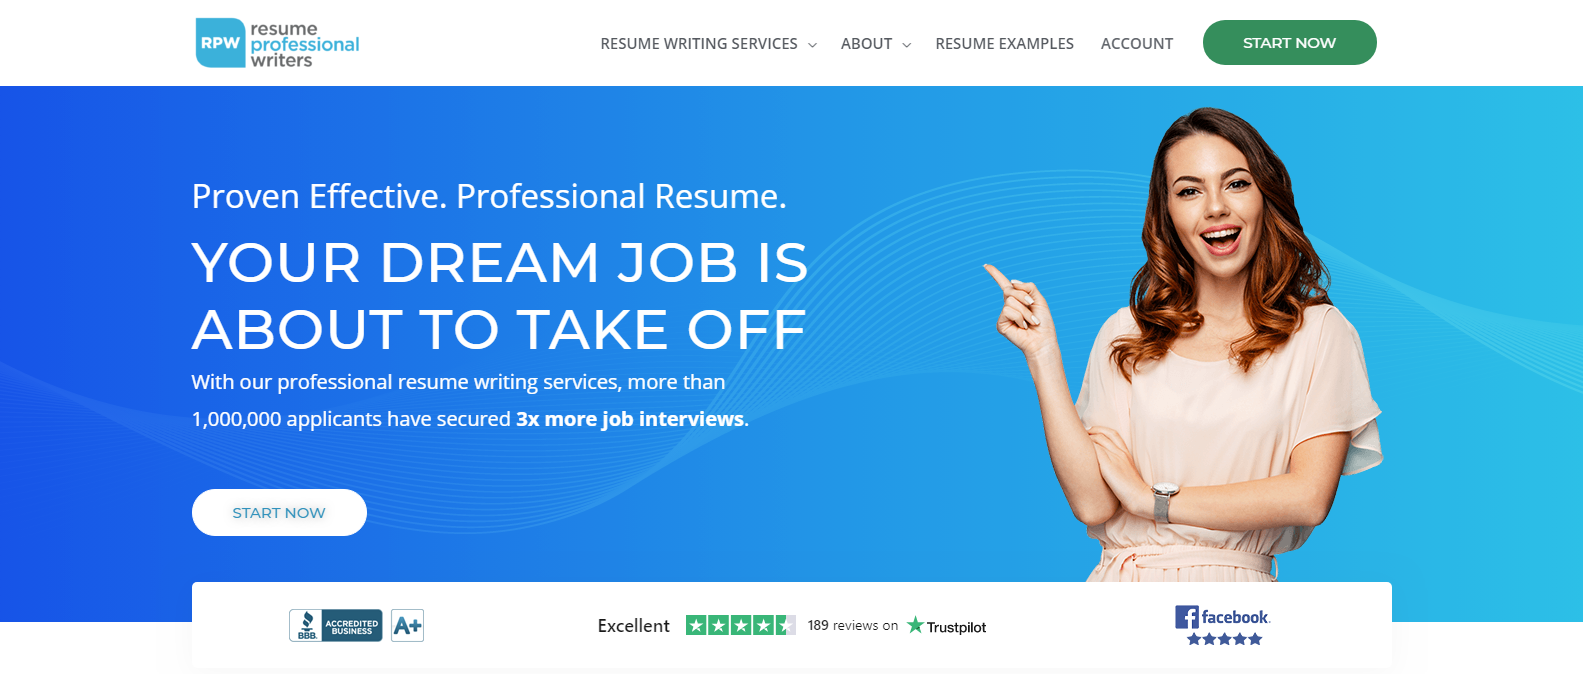 10 Best Military Resume Writing Services in 2021 – Screenshot of Resume Professional Writers Homepage